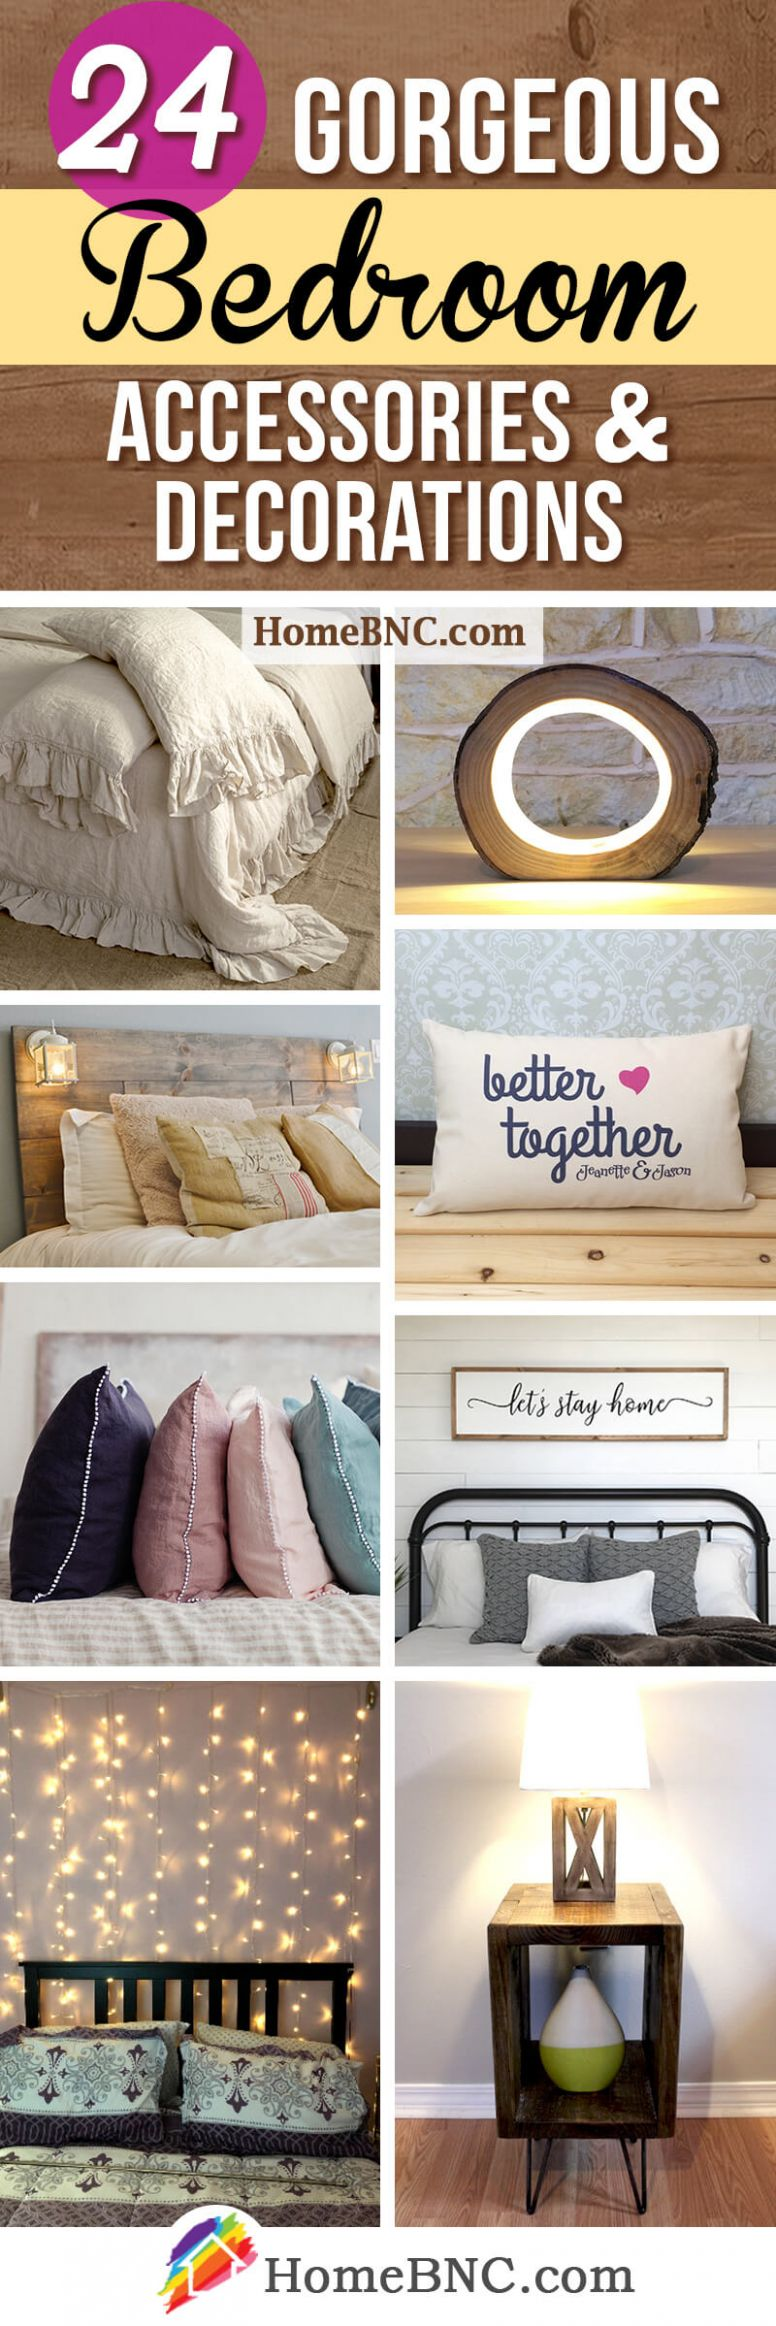 9 Best Etsy Bedroom Decoration Ideas and Accessories to Buy in 9 - bedroom ideas etsy